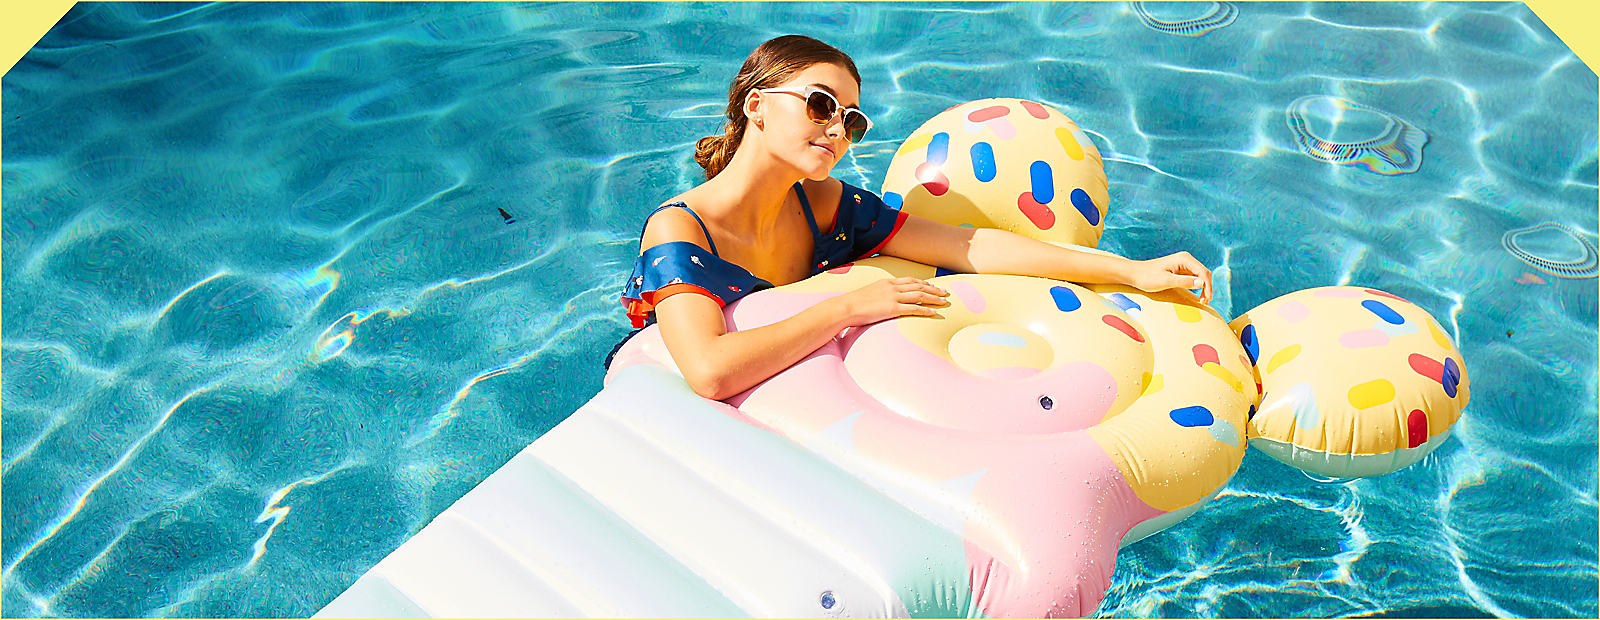 Background image of $20 Pool Float